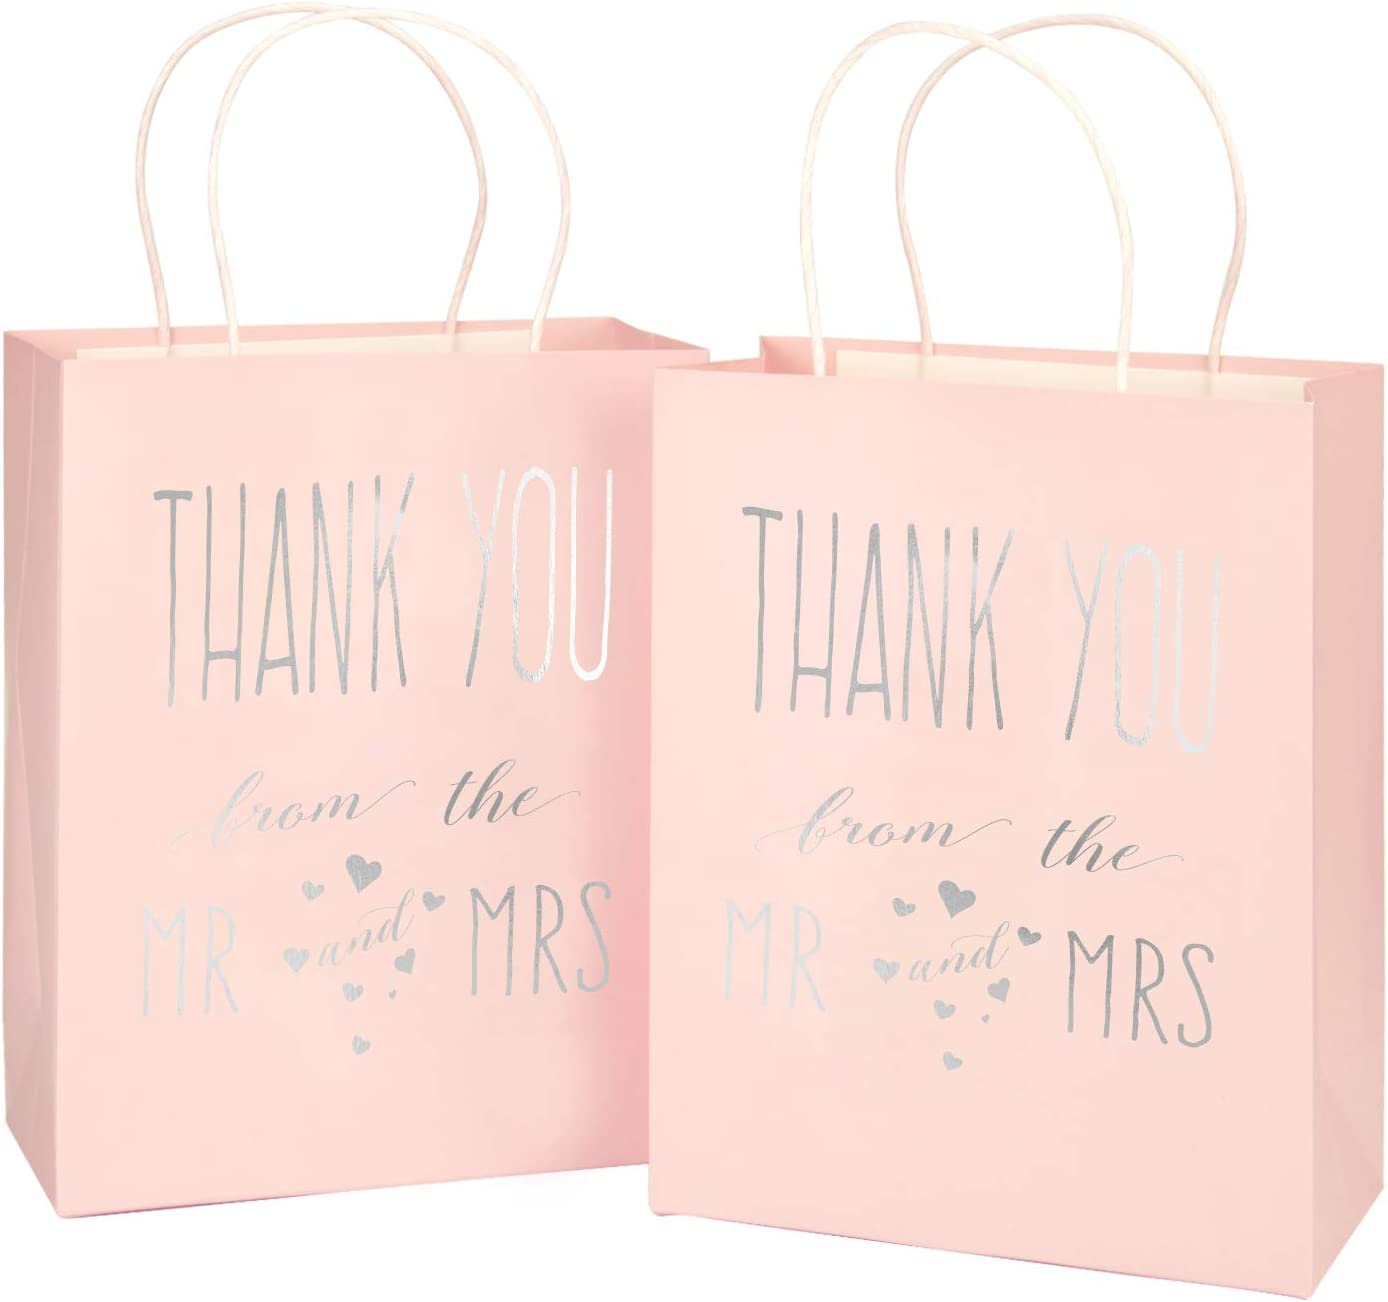 "LaRibbons Medium Size Gift Bags - Silver Foil""Mr. and Mrs. Thank You"" Pink Paper Bags with Handles for Wedding, Birthday, Baby Shower, Party Favors - 12 Pack - 8"" x 4"" x 10"""